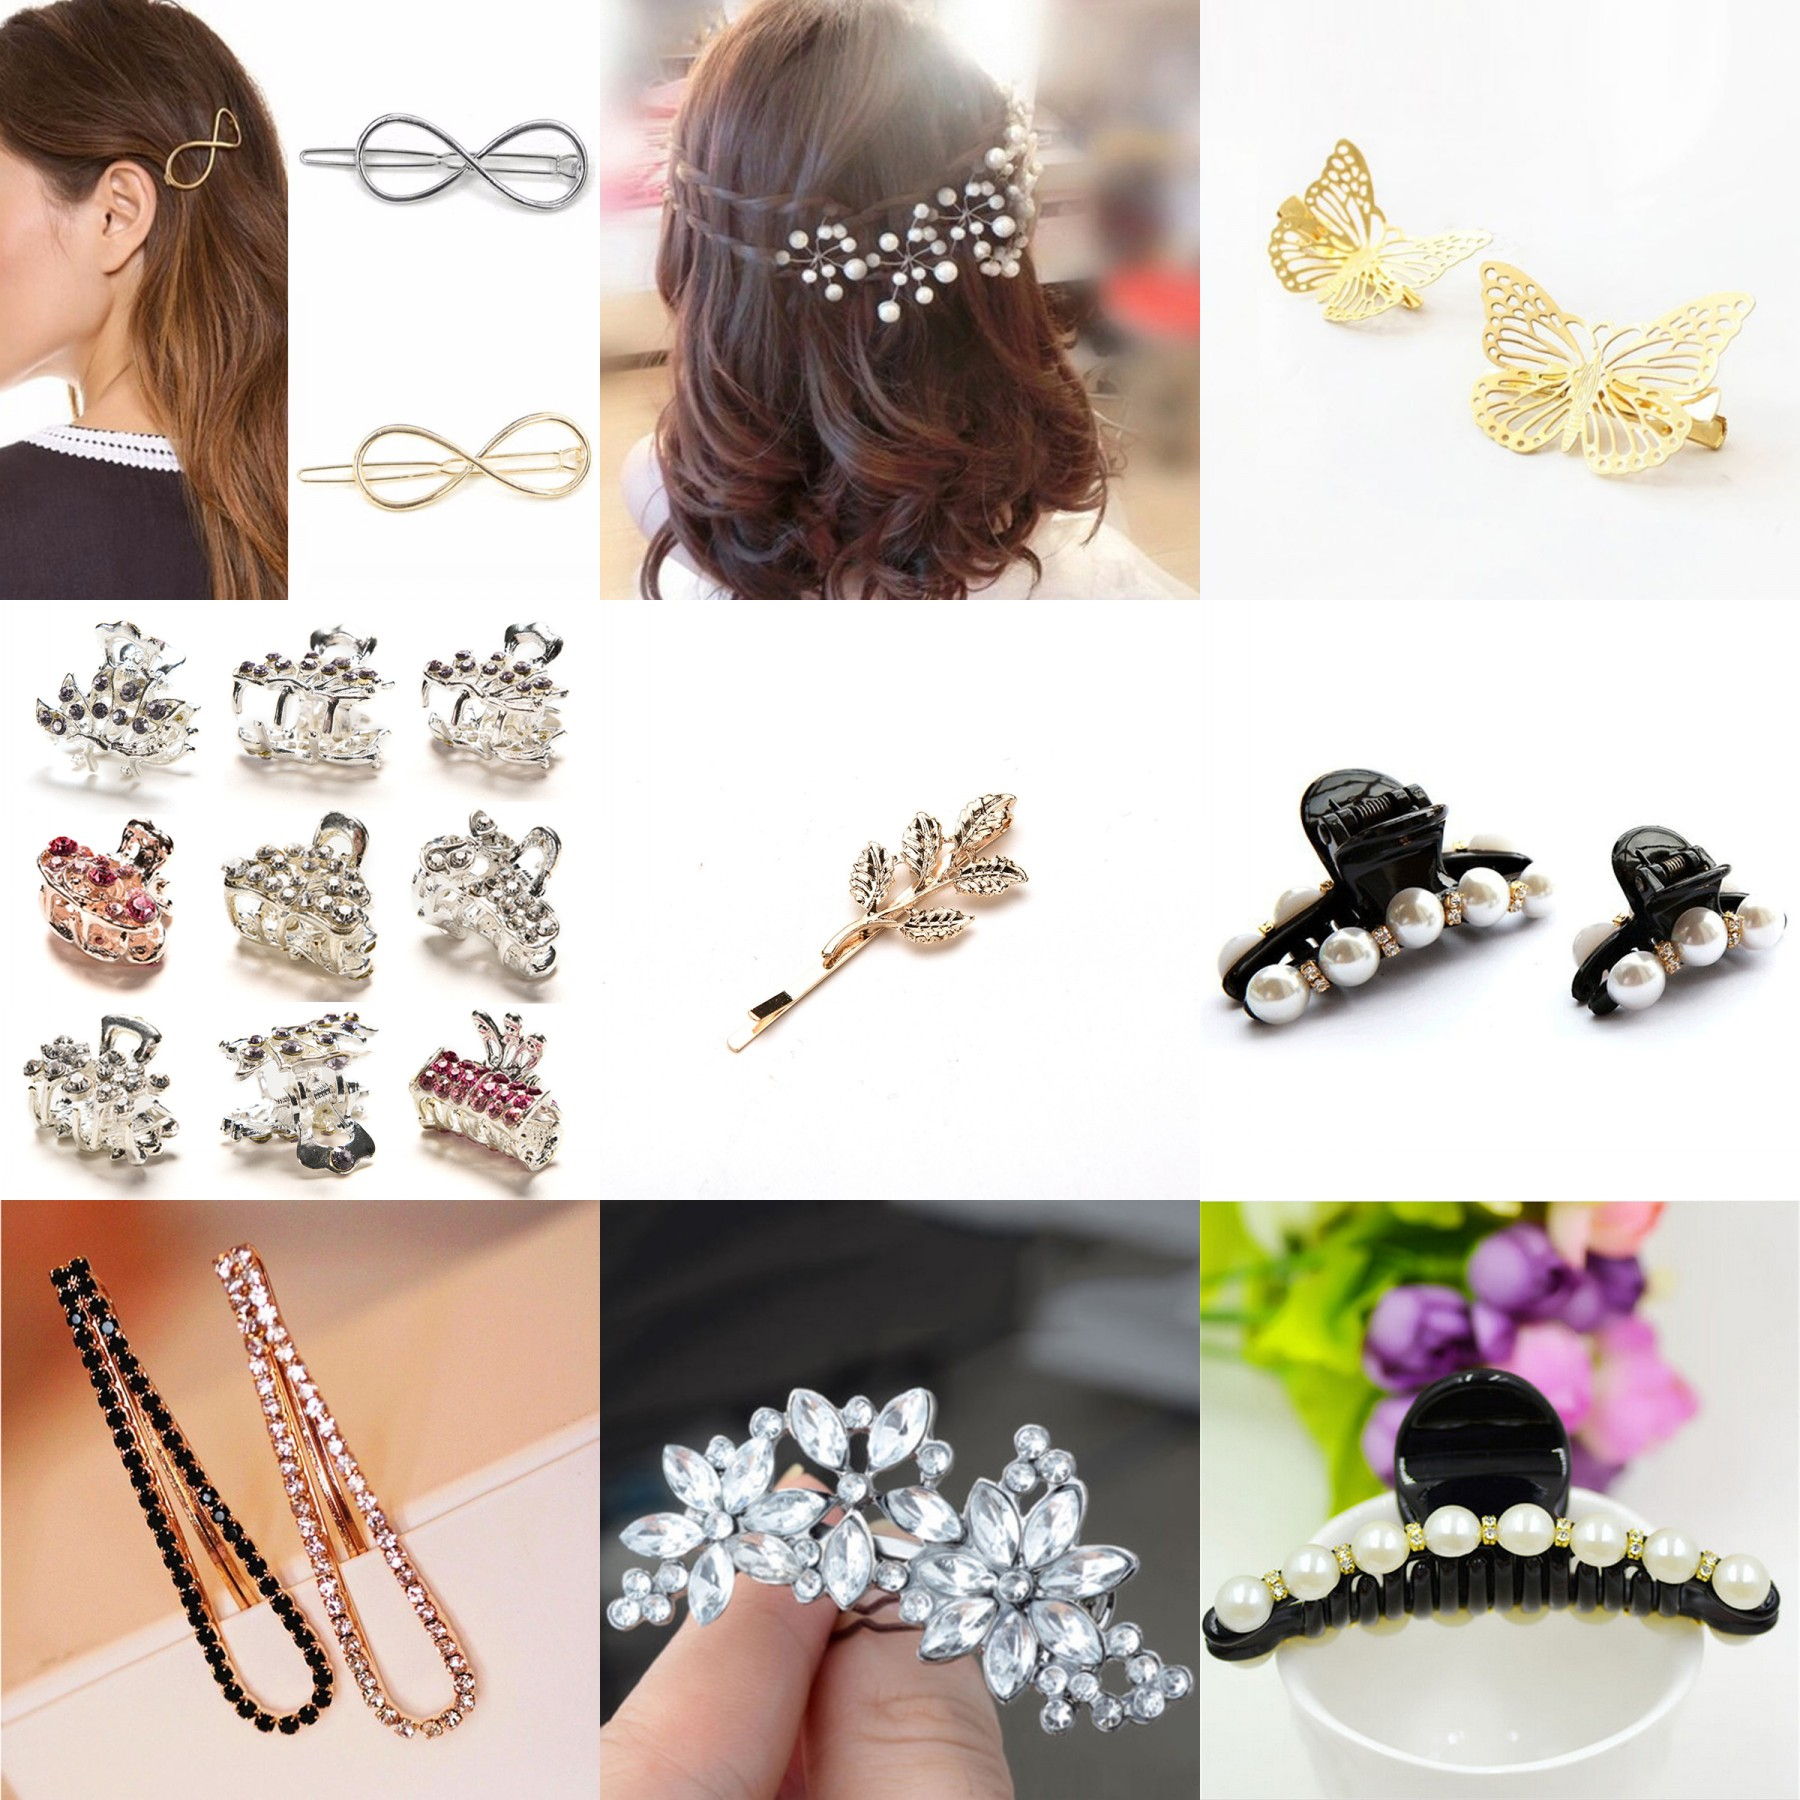 Mini Butterfly Barrette Hair Claw Hair Clip For Women Girl Rhinestones Beads Hairgrip Hairpins Hair Accessories Ornaments